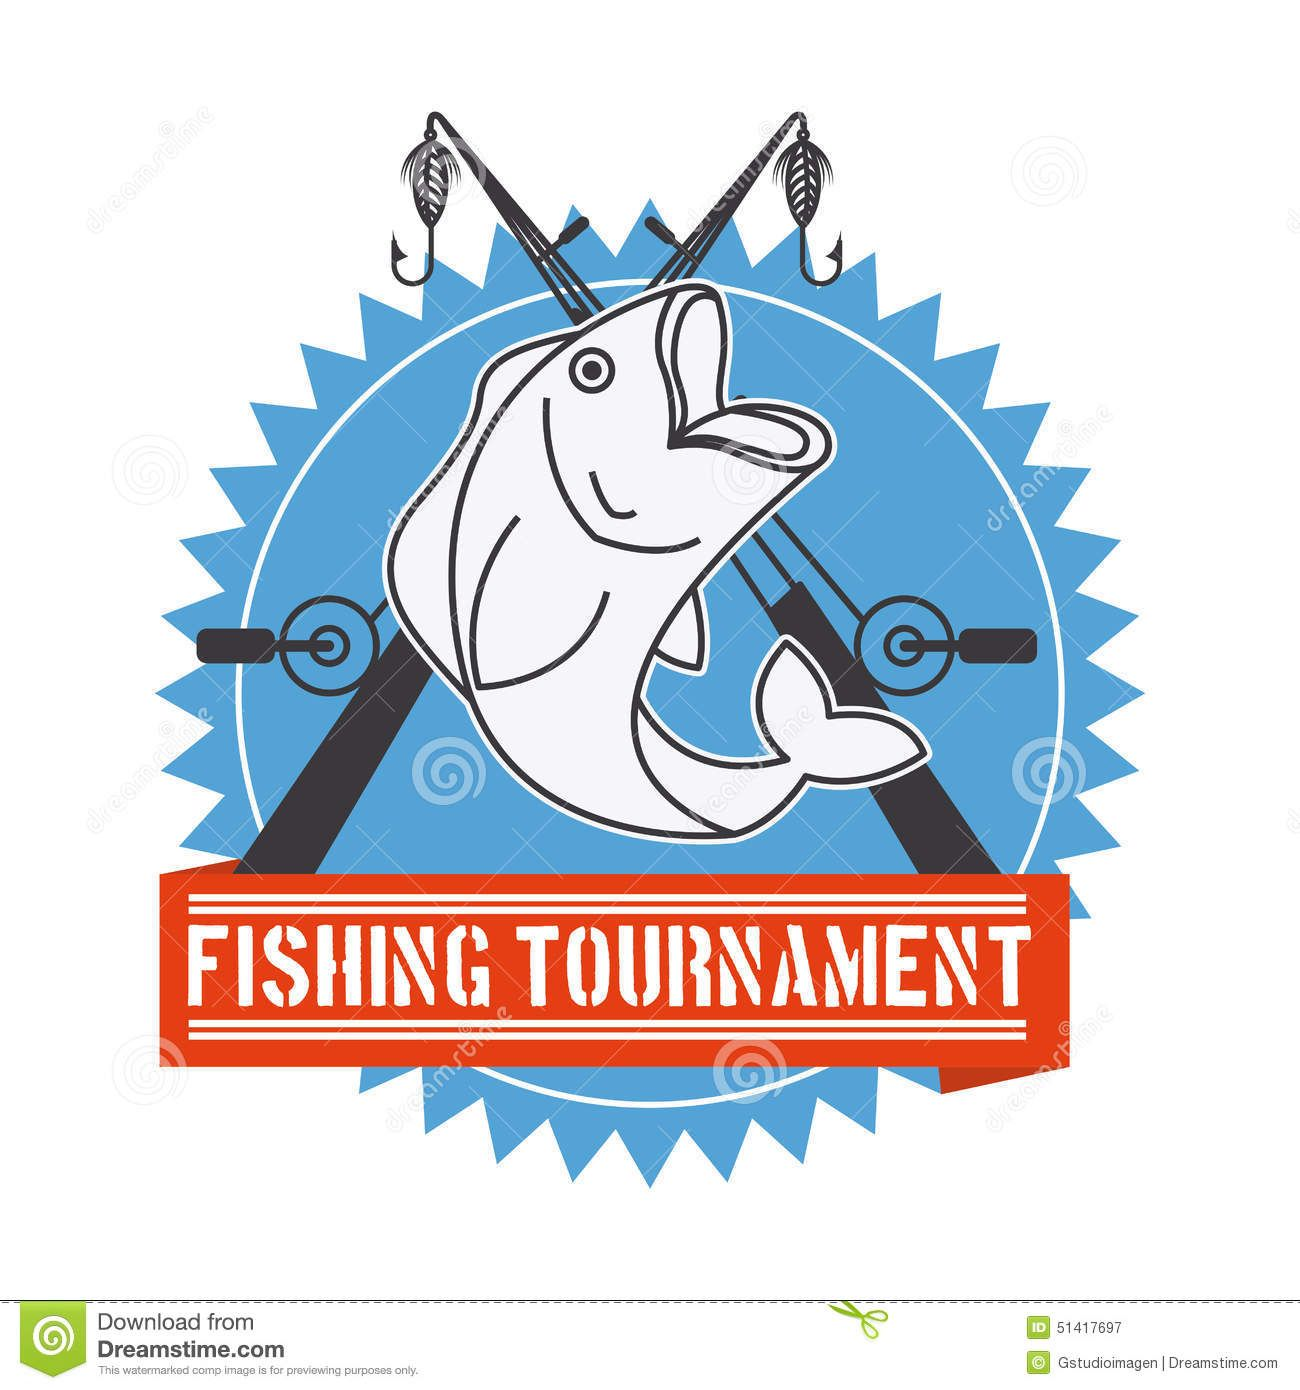 Bass clipart fishing derby. Tournament google search poster